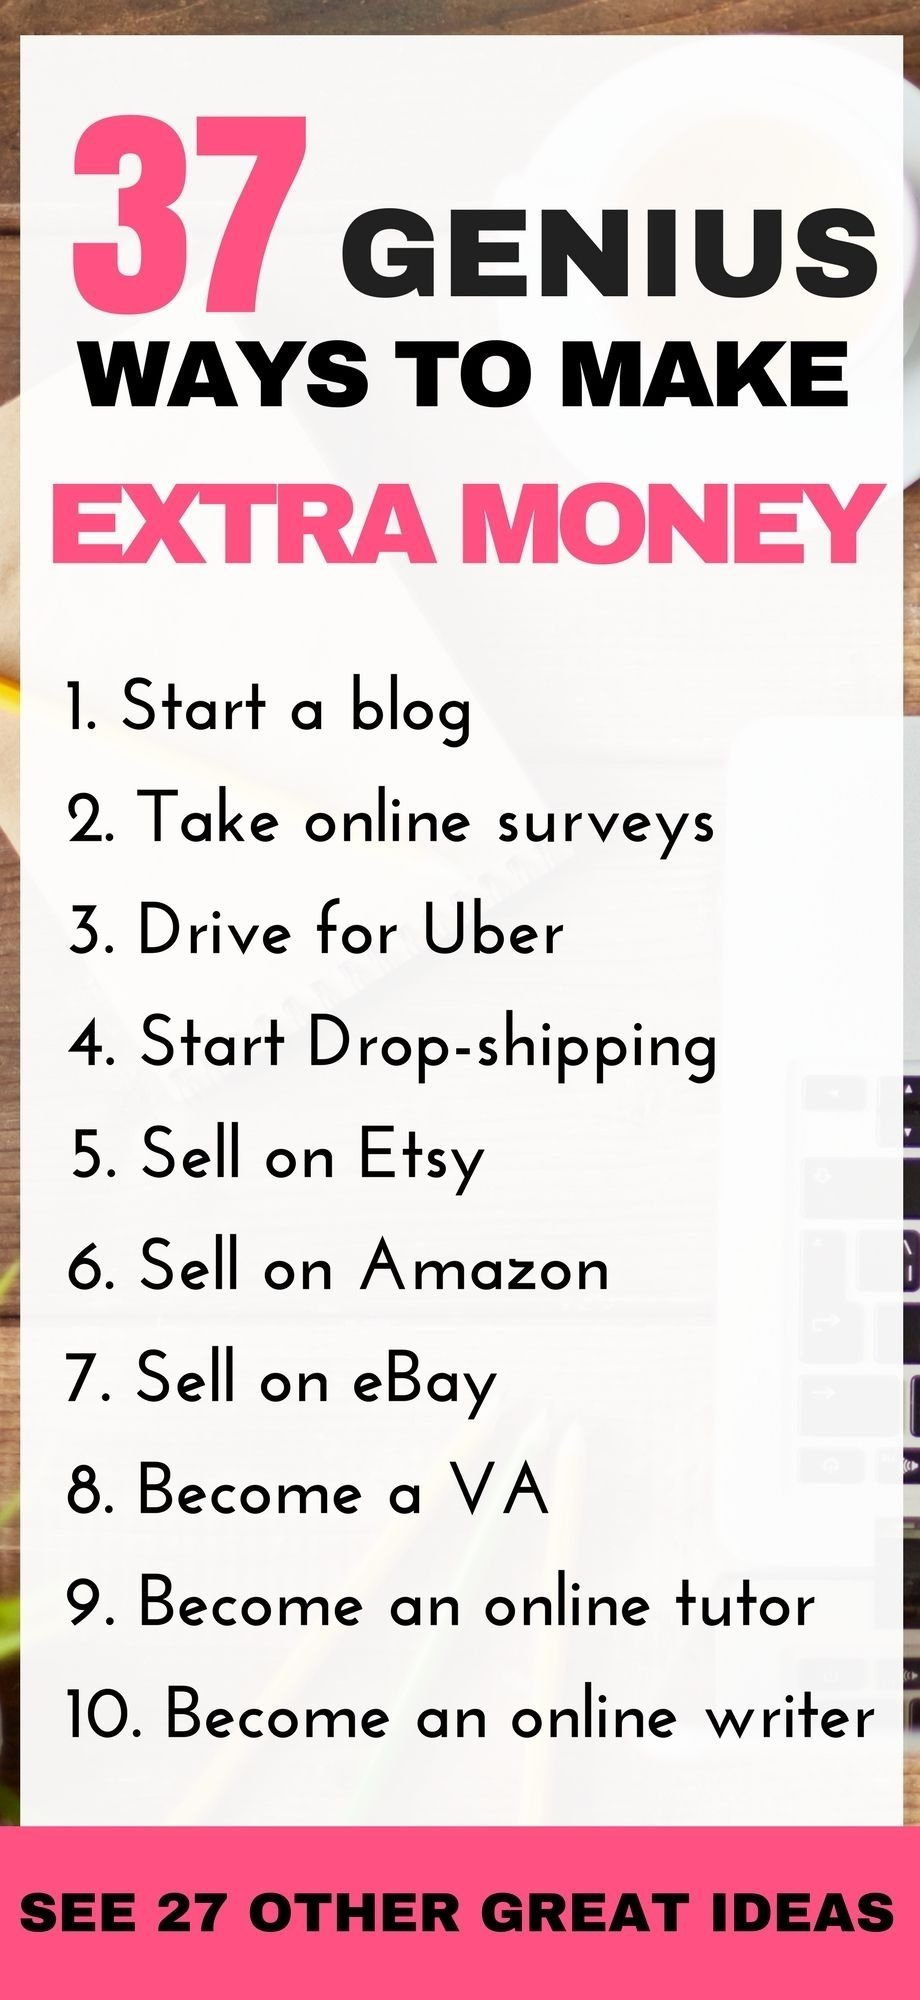 10 Stylish Ideas To Make Extra Money 30 genius ways to make extra money 1000 working from home 2